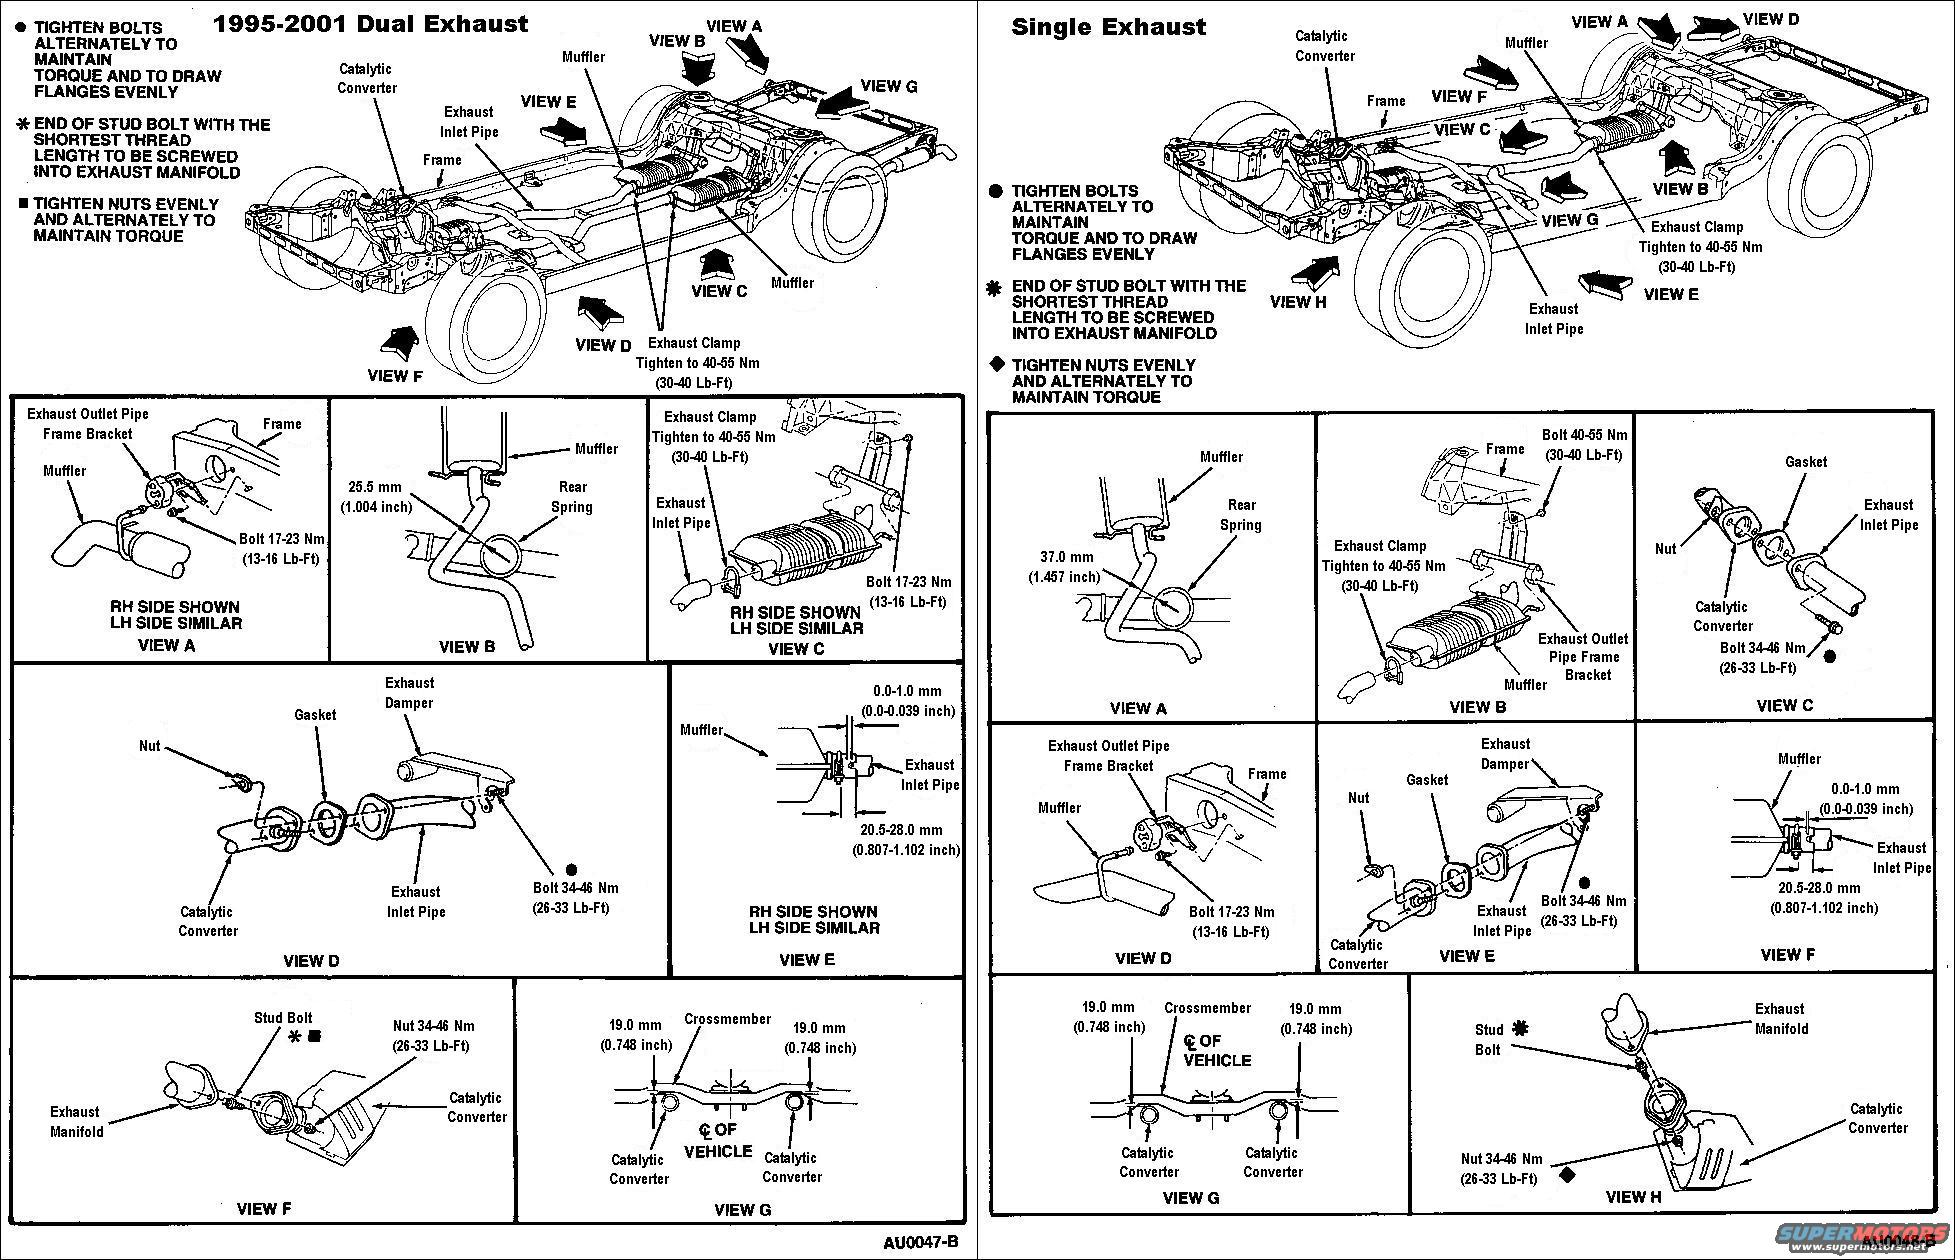 Ford Crown Victoria Engine Diagram Wiring Library 5l 2 File 97 Of 208 1994 Diagrams